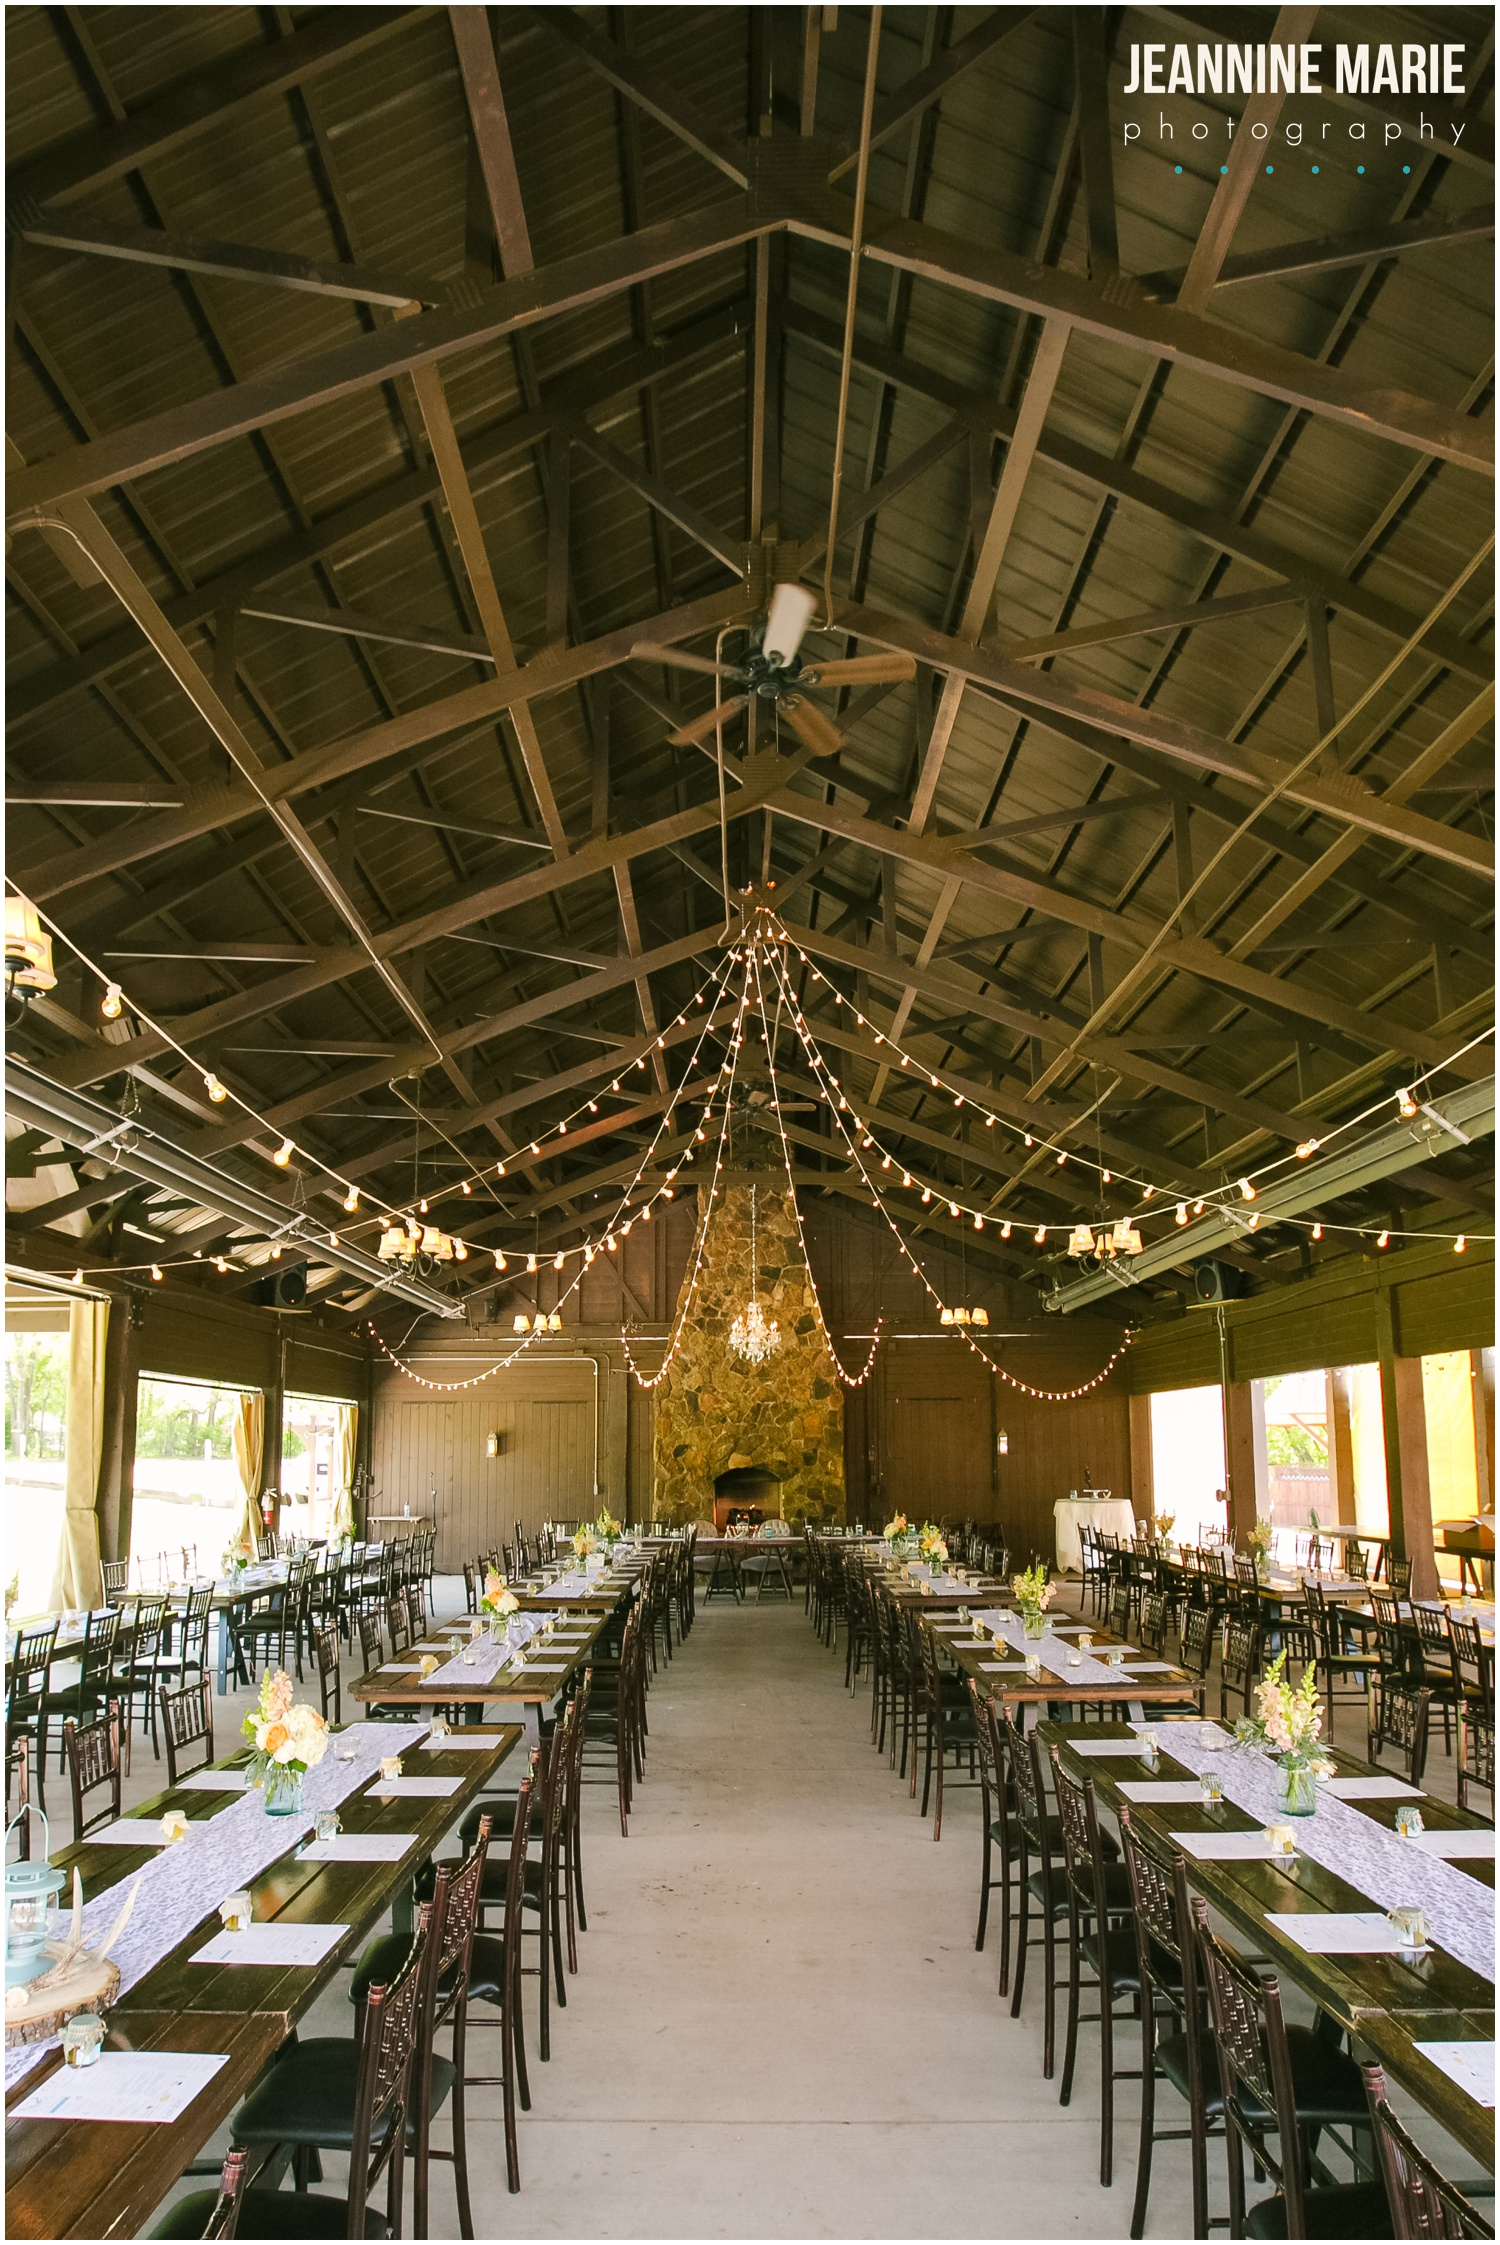 Hope Glen Farm, Twin Cities wedding venues, Minnesota farm weddings, Jeannine Marie Photography, Minneapolis wedding photographer_1784